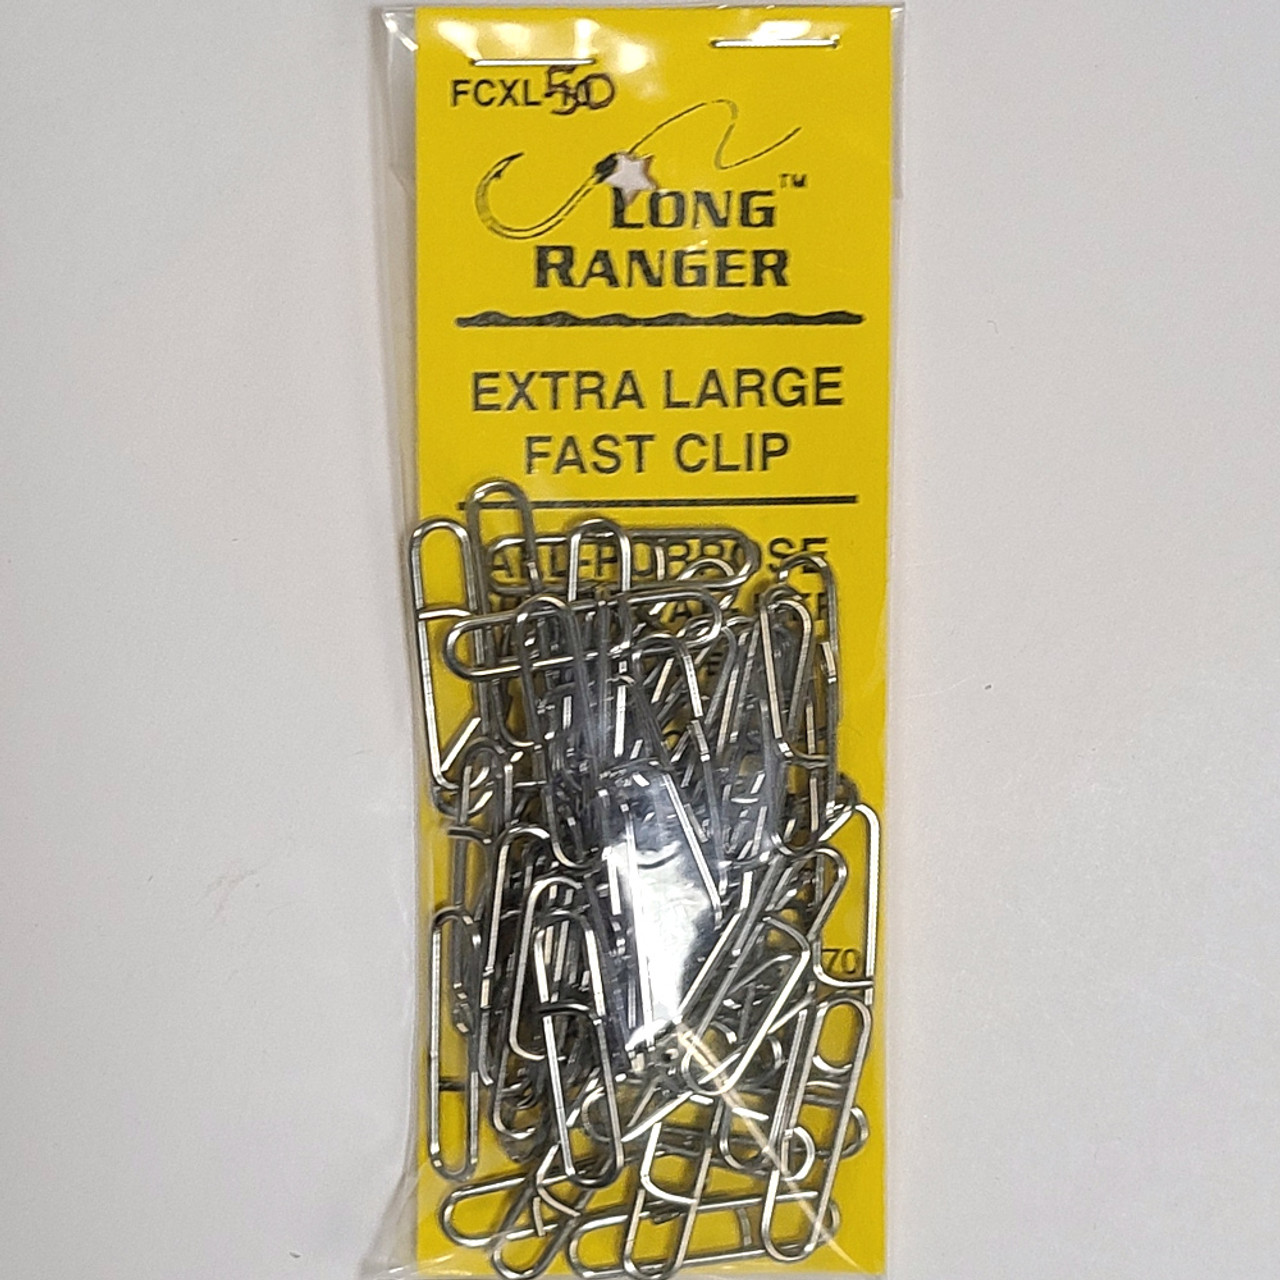 One More Cast - Extra Large Fast Clips 50 Pack